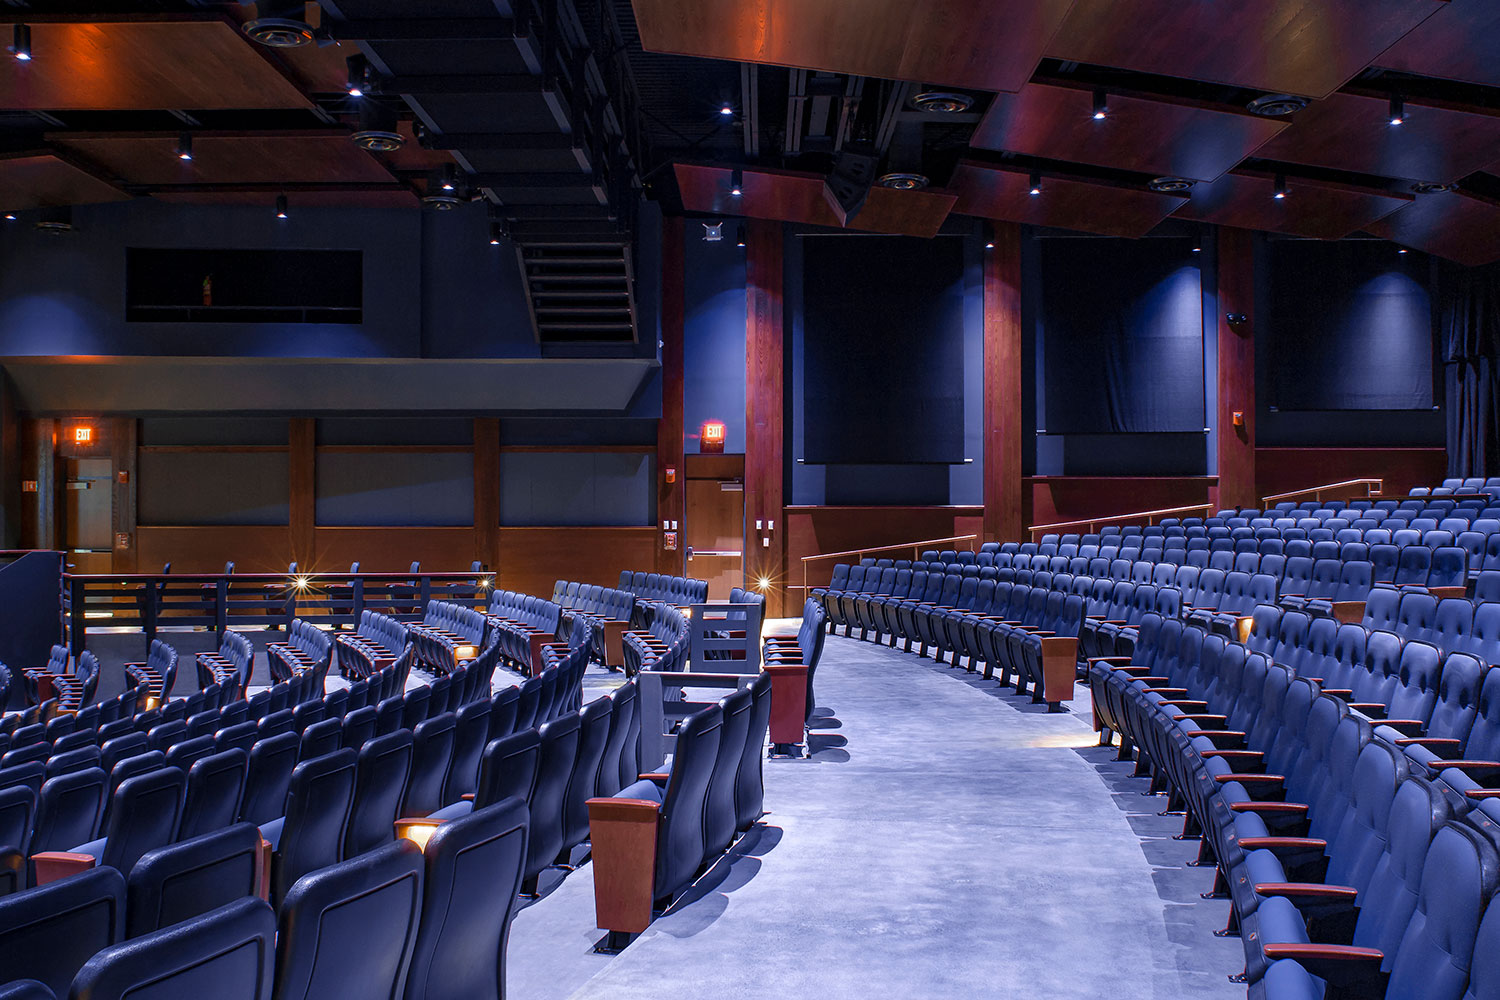 Goshen High School new auditorium in Goshen, NY. WSDG was retained to acoustically measure the space and collaborate on the redesign with LAN Associates to optimize the space for these needs while still retaining the aesthetic goals of the redesign. Side View.